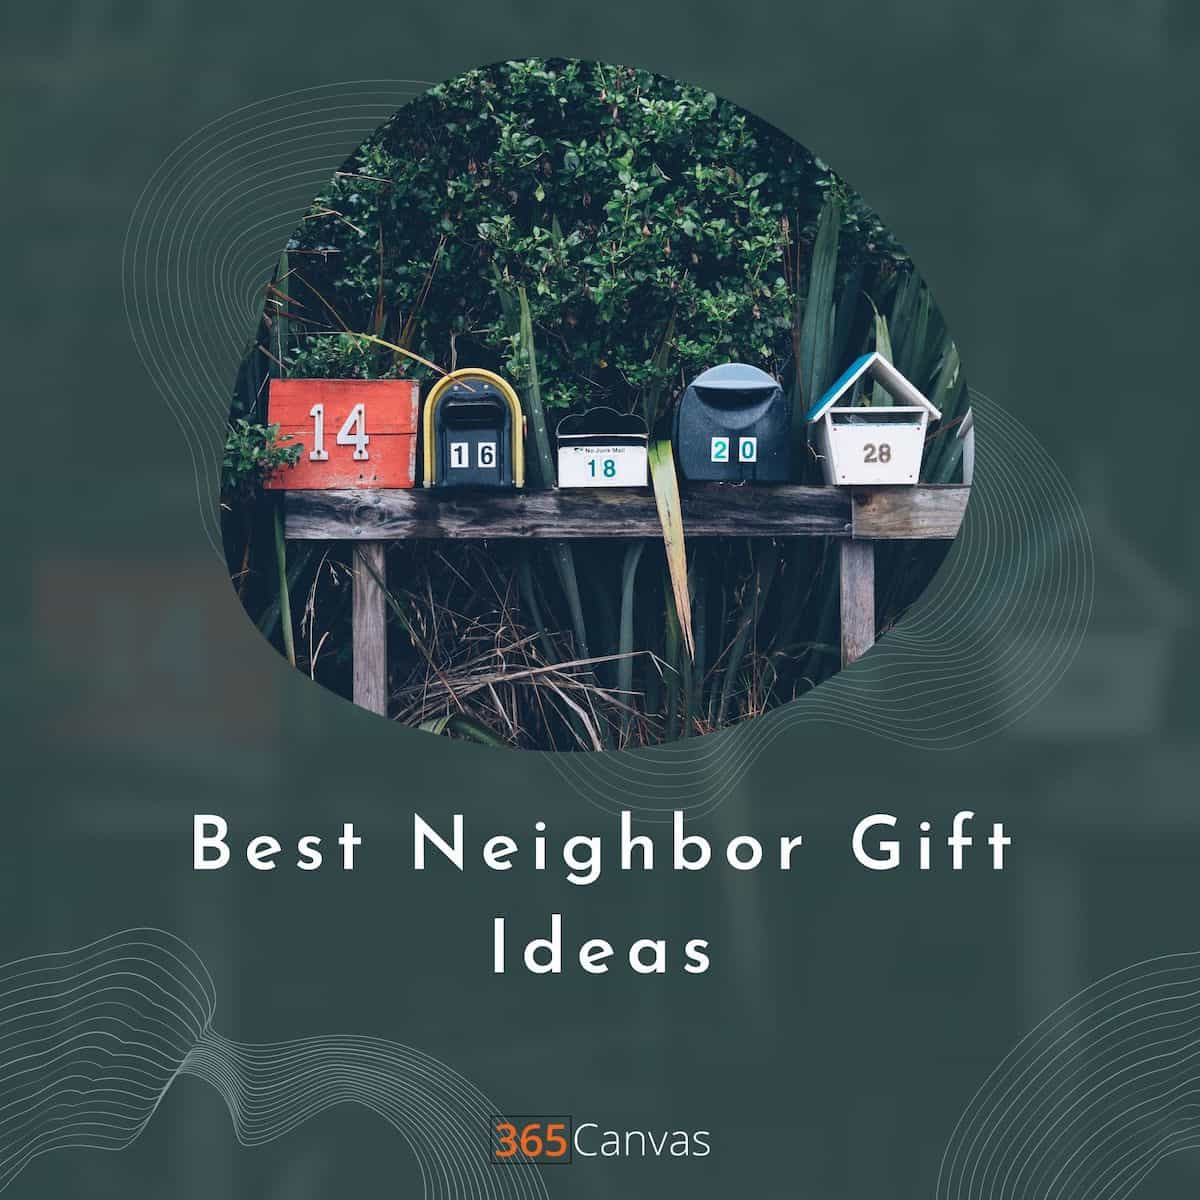 Neighbor Christmas Gifts: 26 Gift Ideas Your Neighbors Will Love In 2021